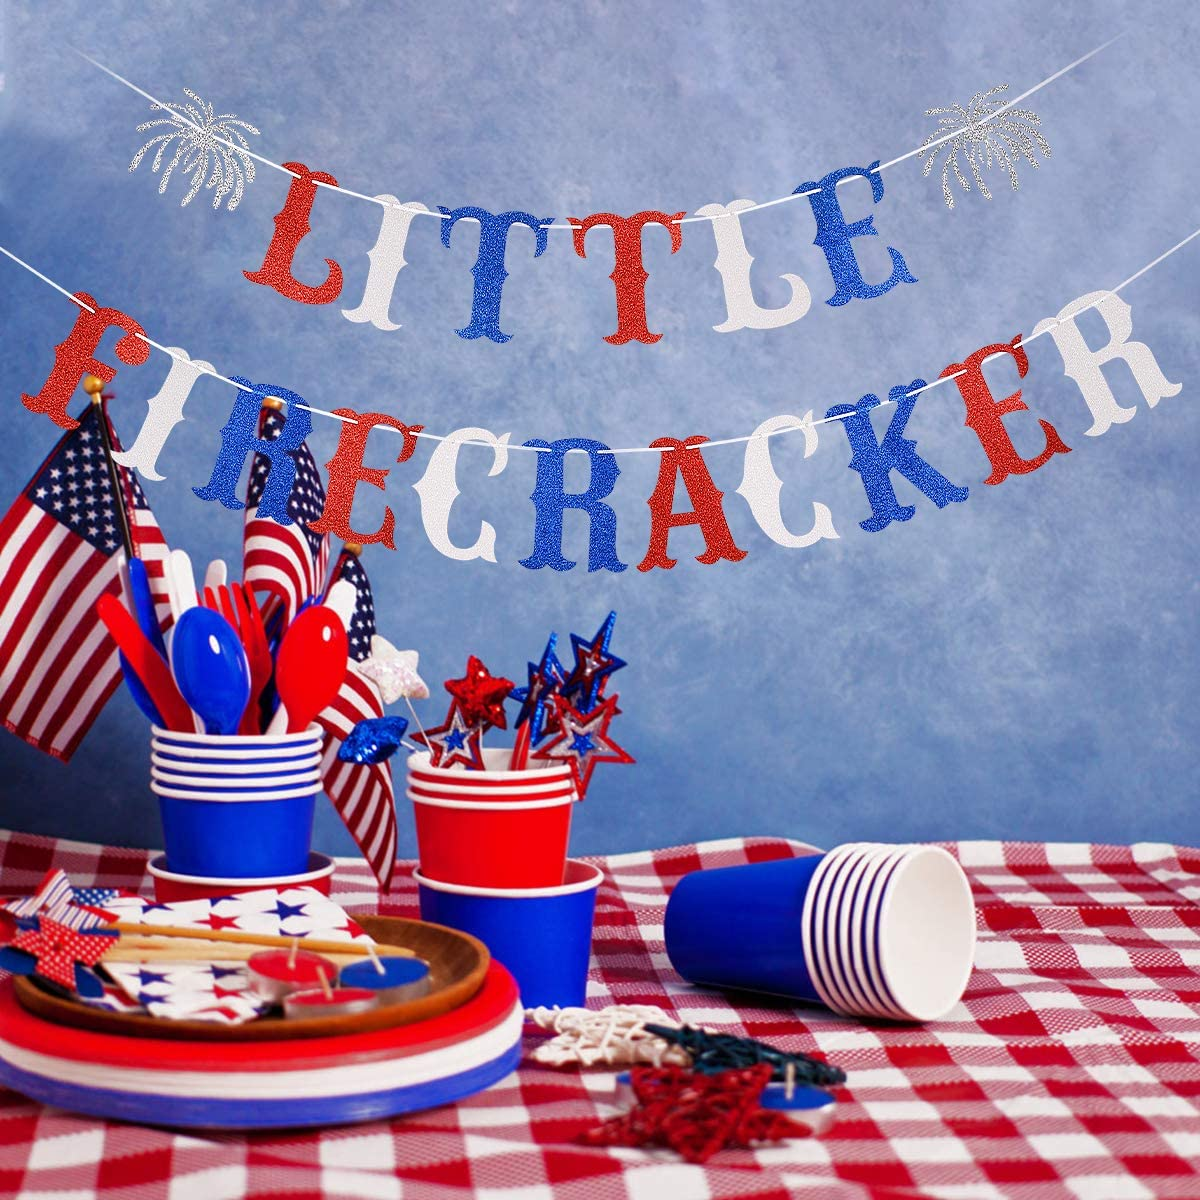 4th of July Baby Shower Party Decorations,4th of July Birthday Party Decor,Home Decor Glittery Little Firecracker Banner